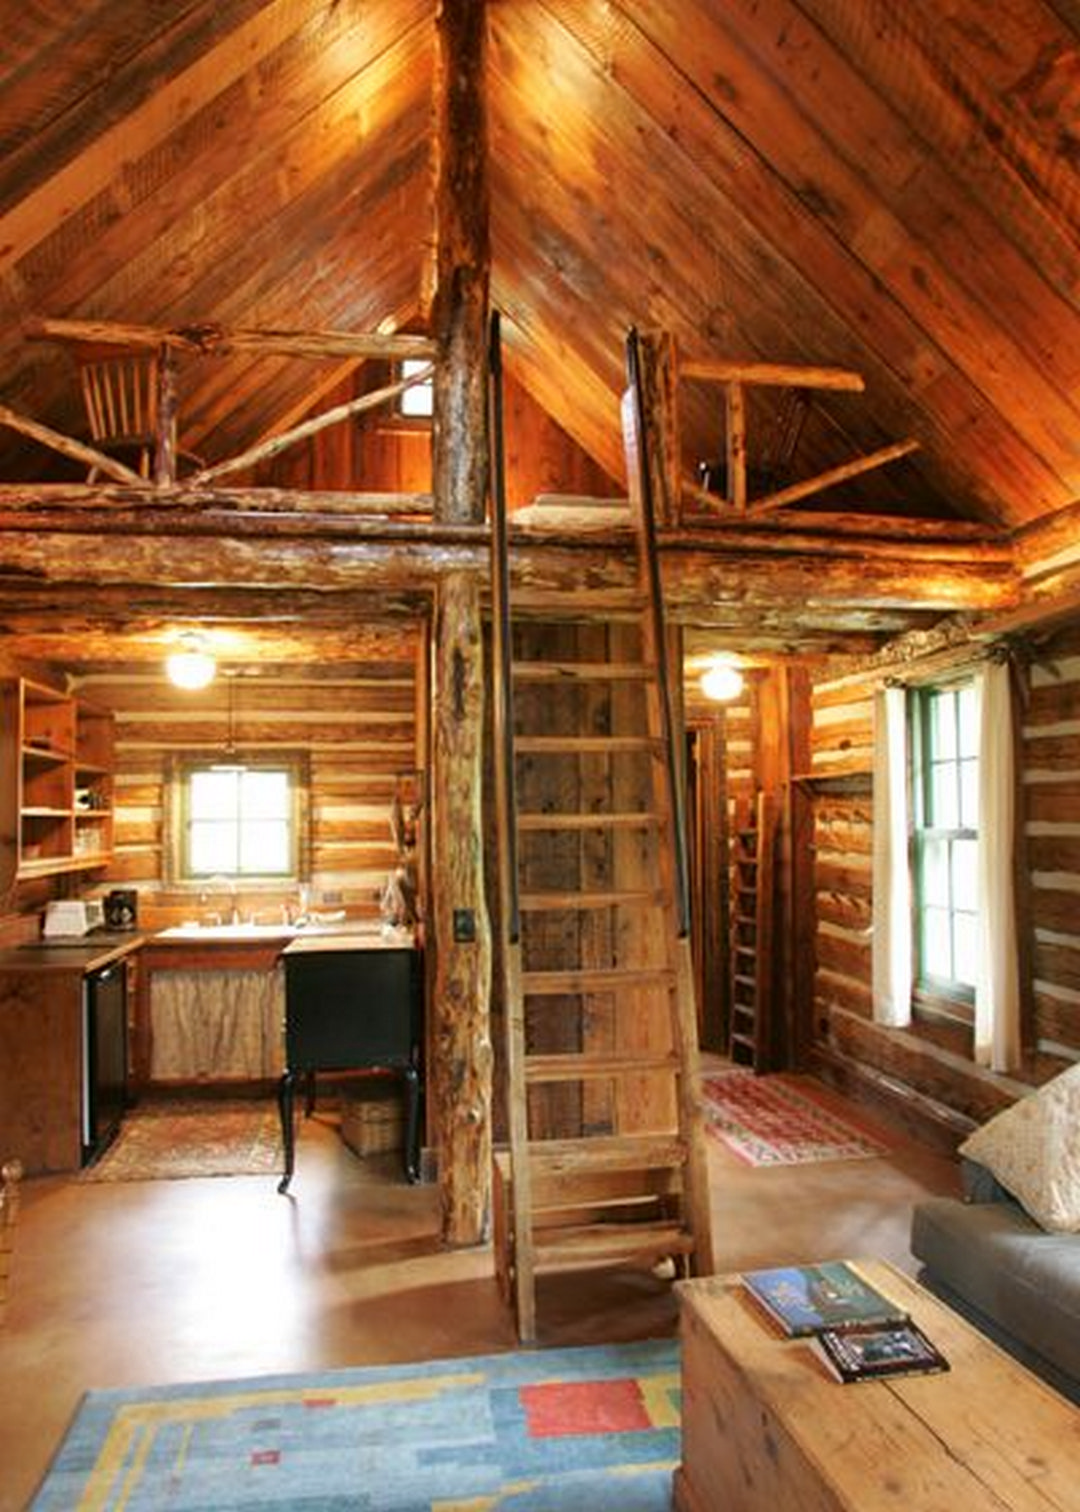 49 gorgeous rustic cabin interior ideas cabin interiors for Log homes interior designs 2